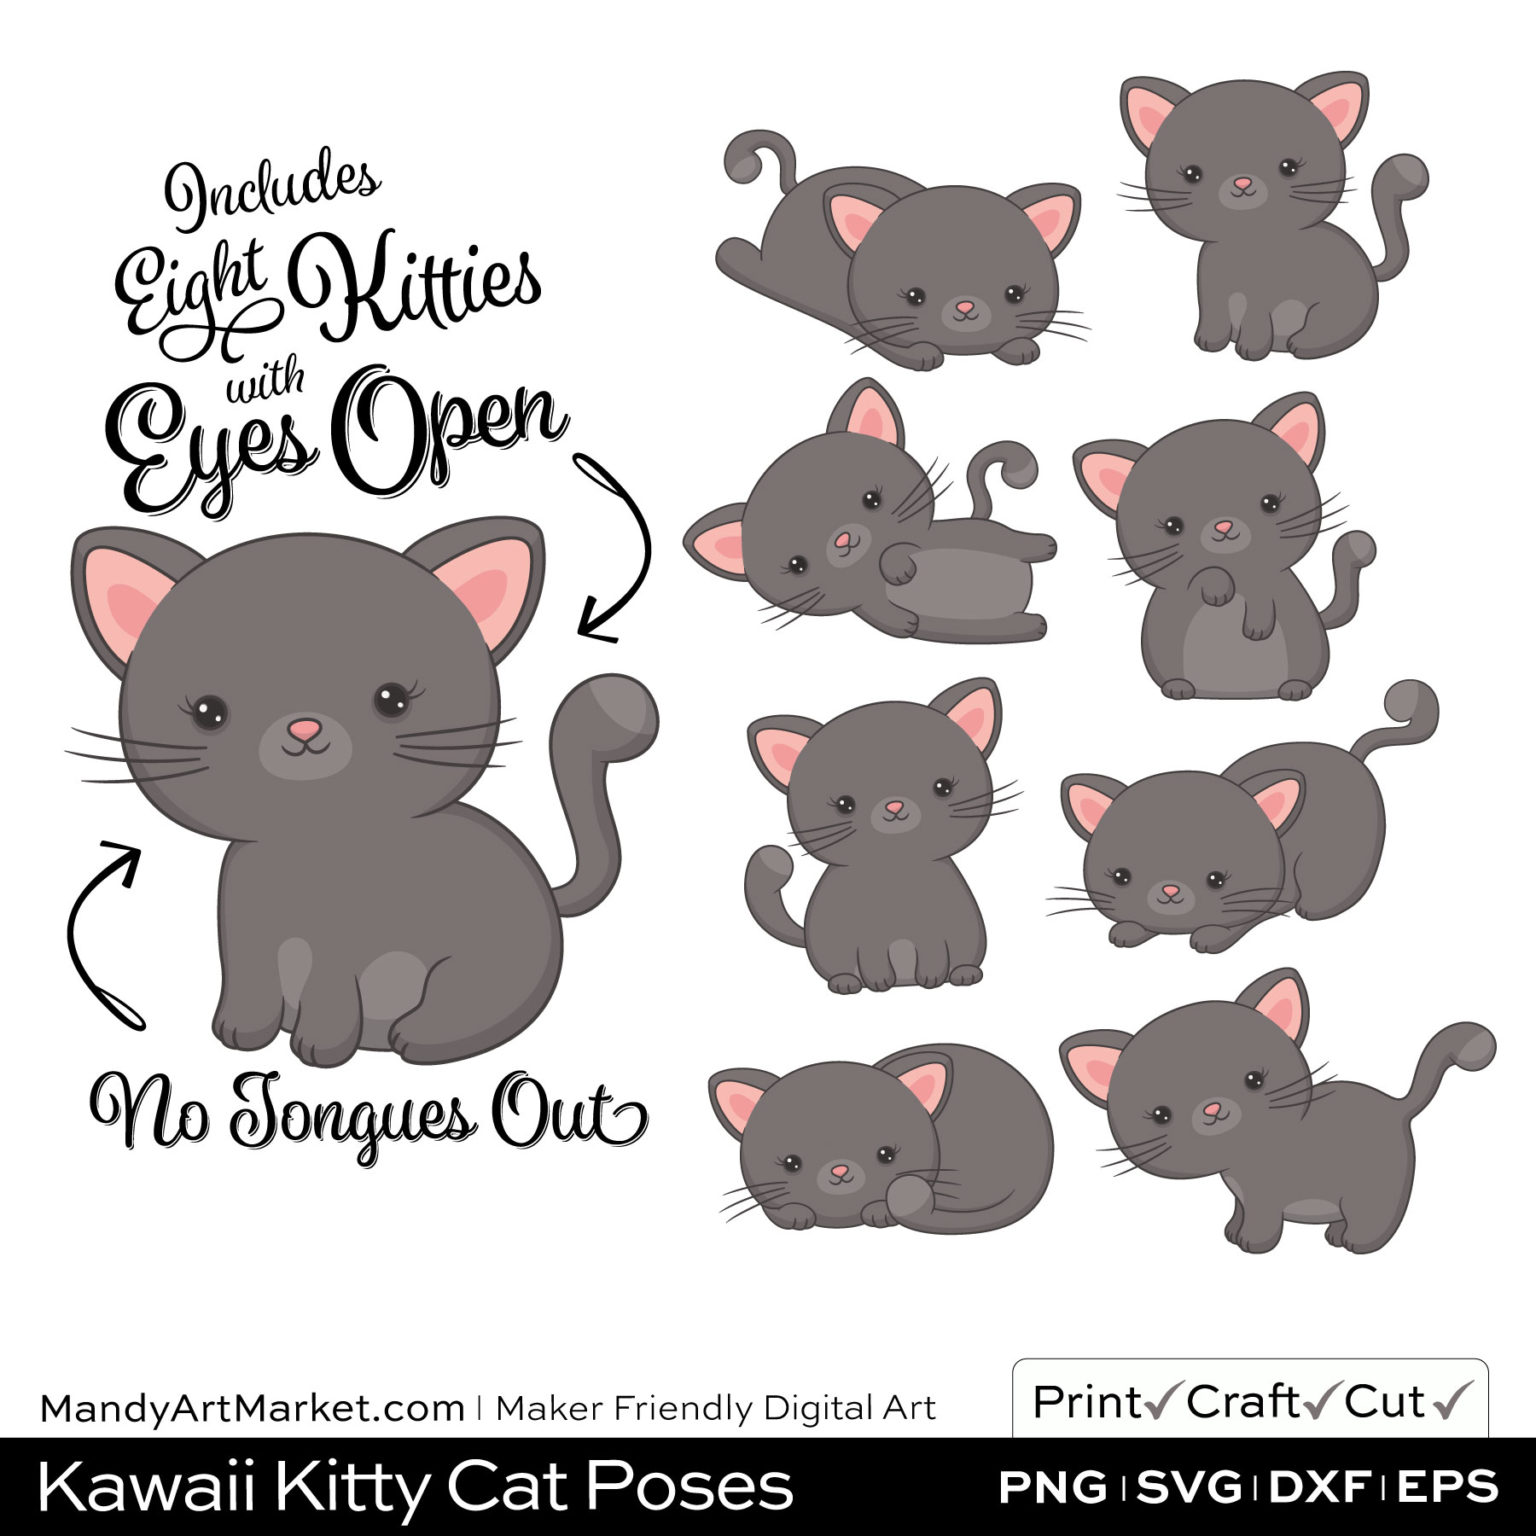 Pewter Gray Kawaii Kitty Cat Poses Clipart on Wood Background